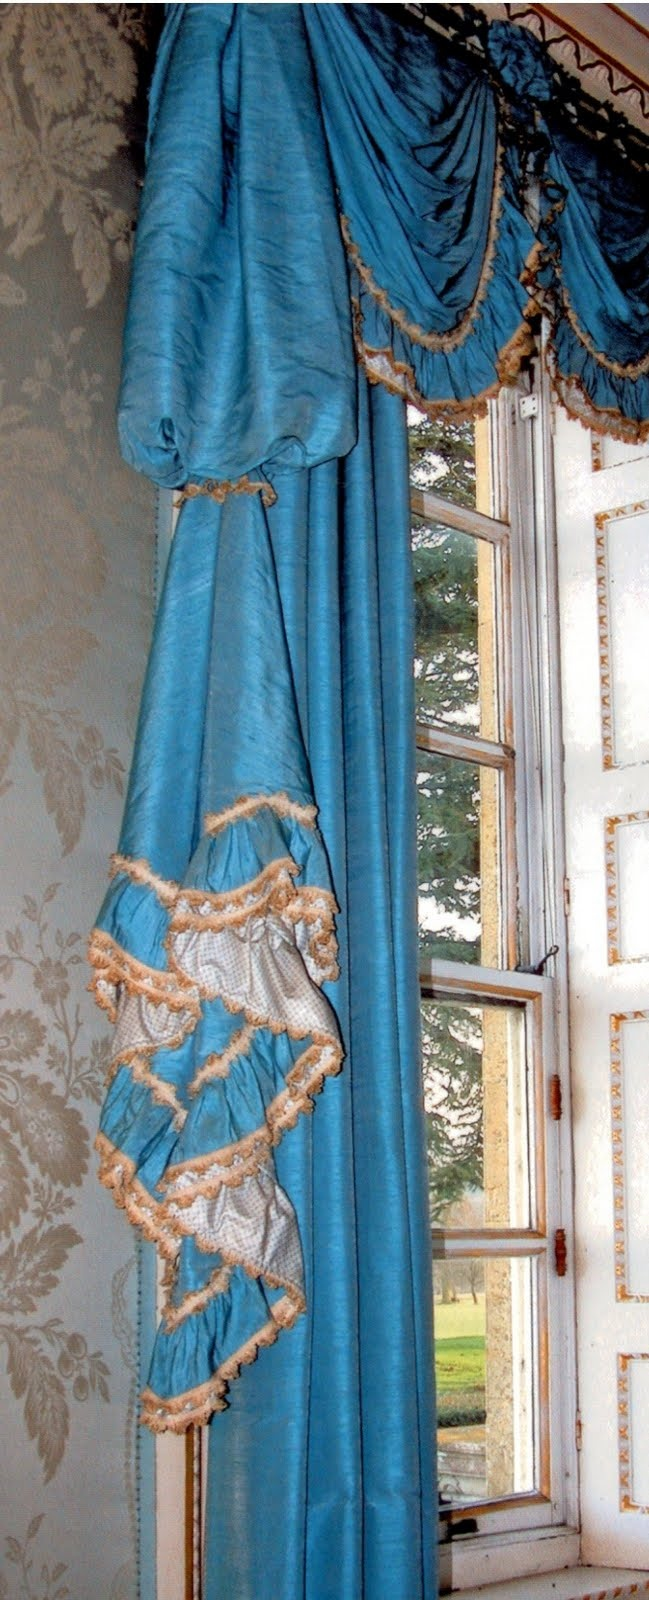 CornOrig2.jpg (image) John Fowler Design  this curtain and the color are dynomite